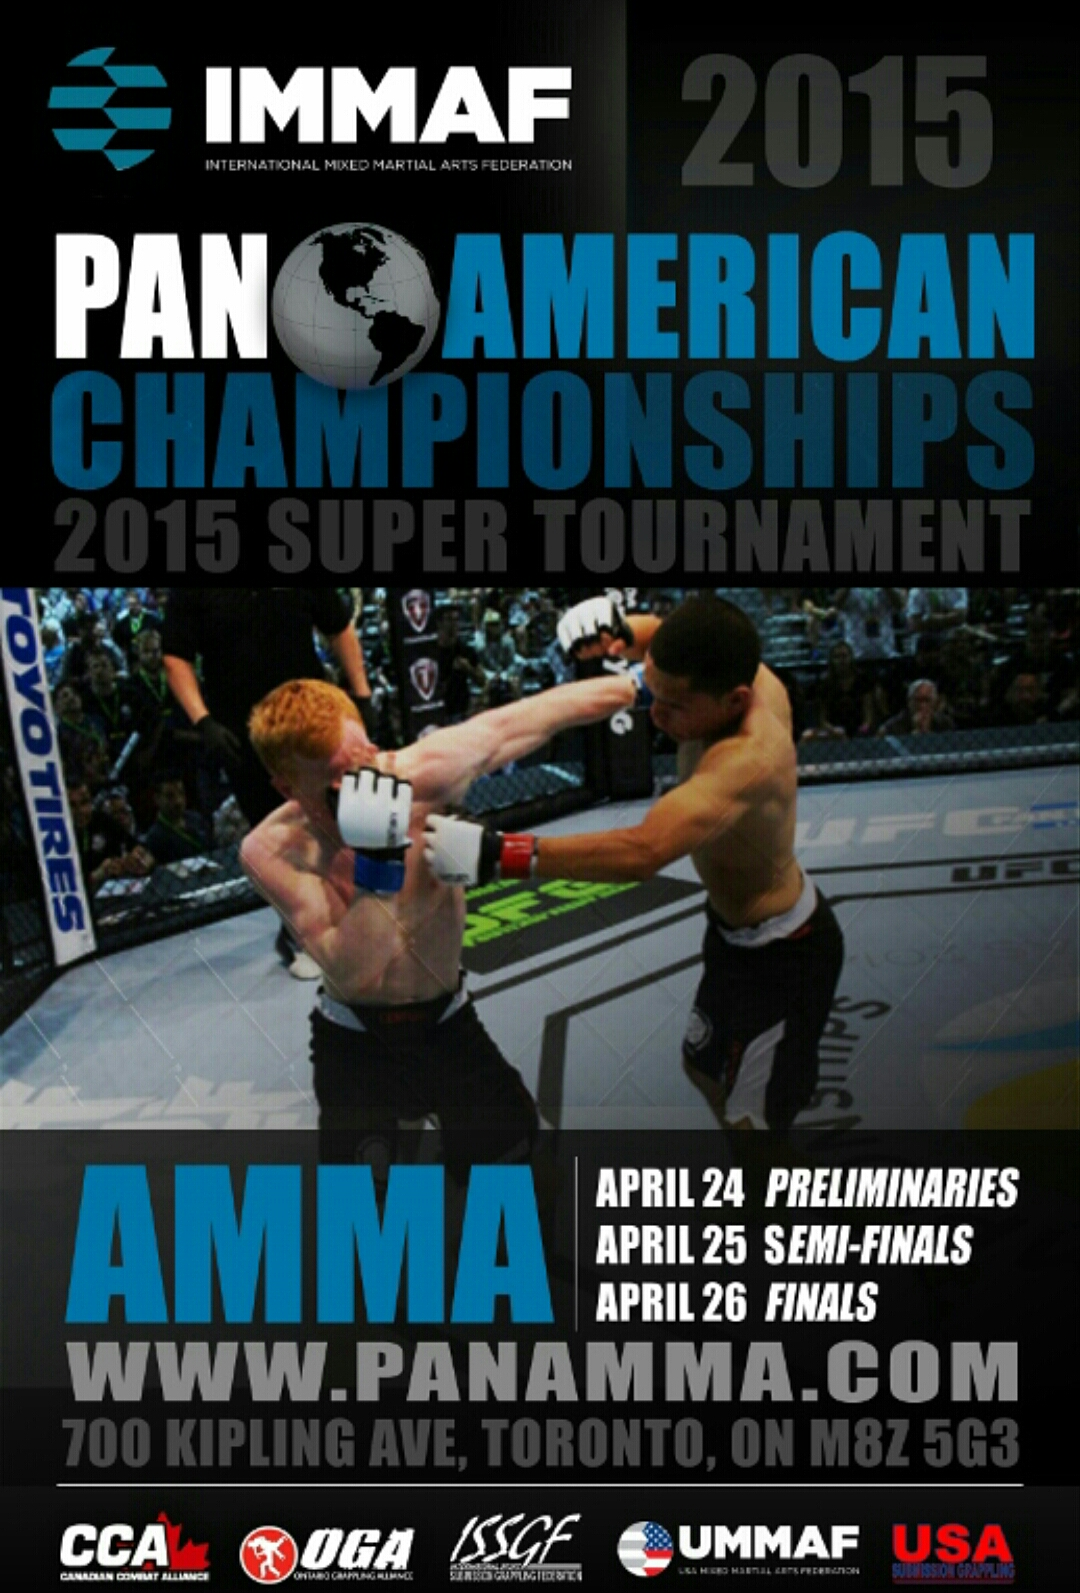 Last Chance to Apply for IMMAF Pan American Championships of Amateur MMA